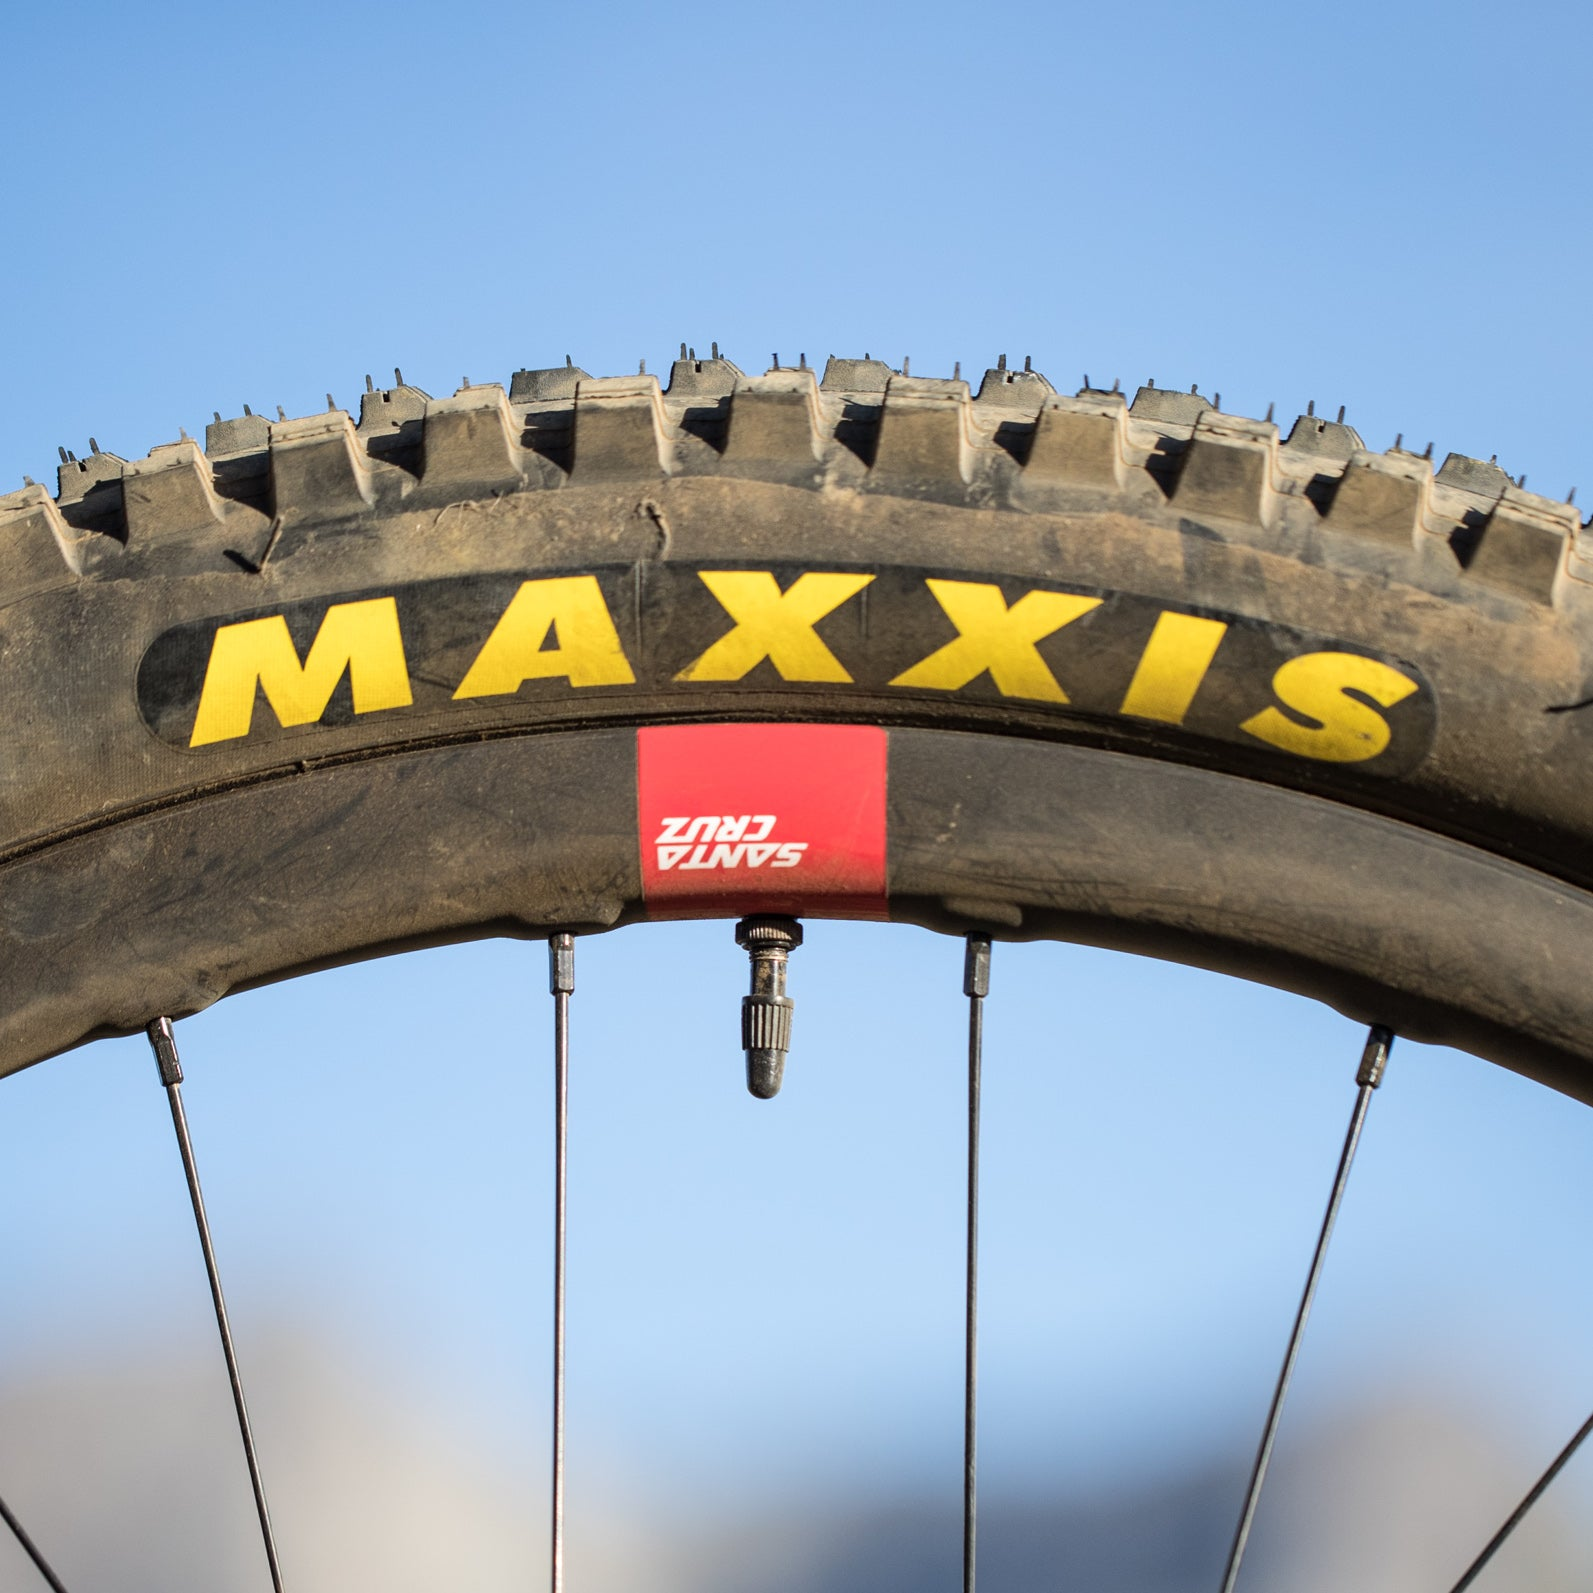 WHATEVER YOU RIDE: SOUTH AFRICA HAS A MAXXIS TYRE FOR YOU